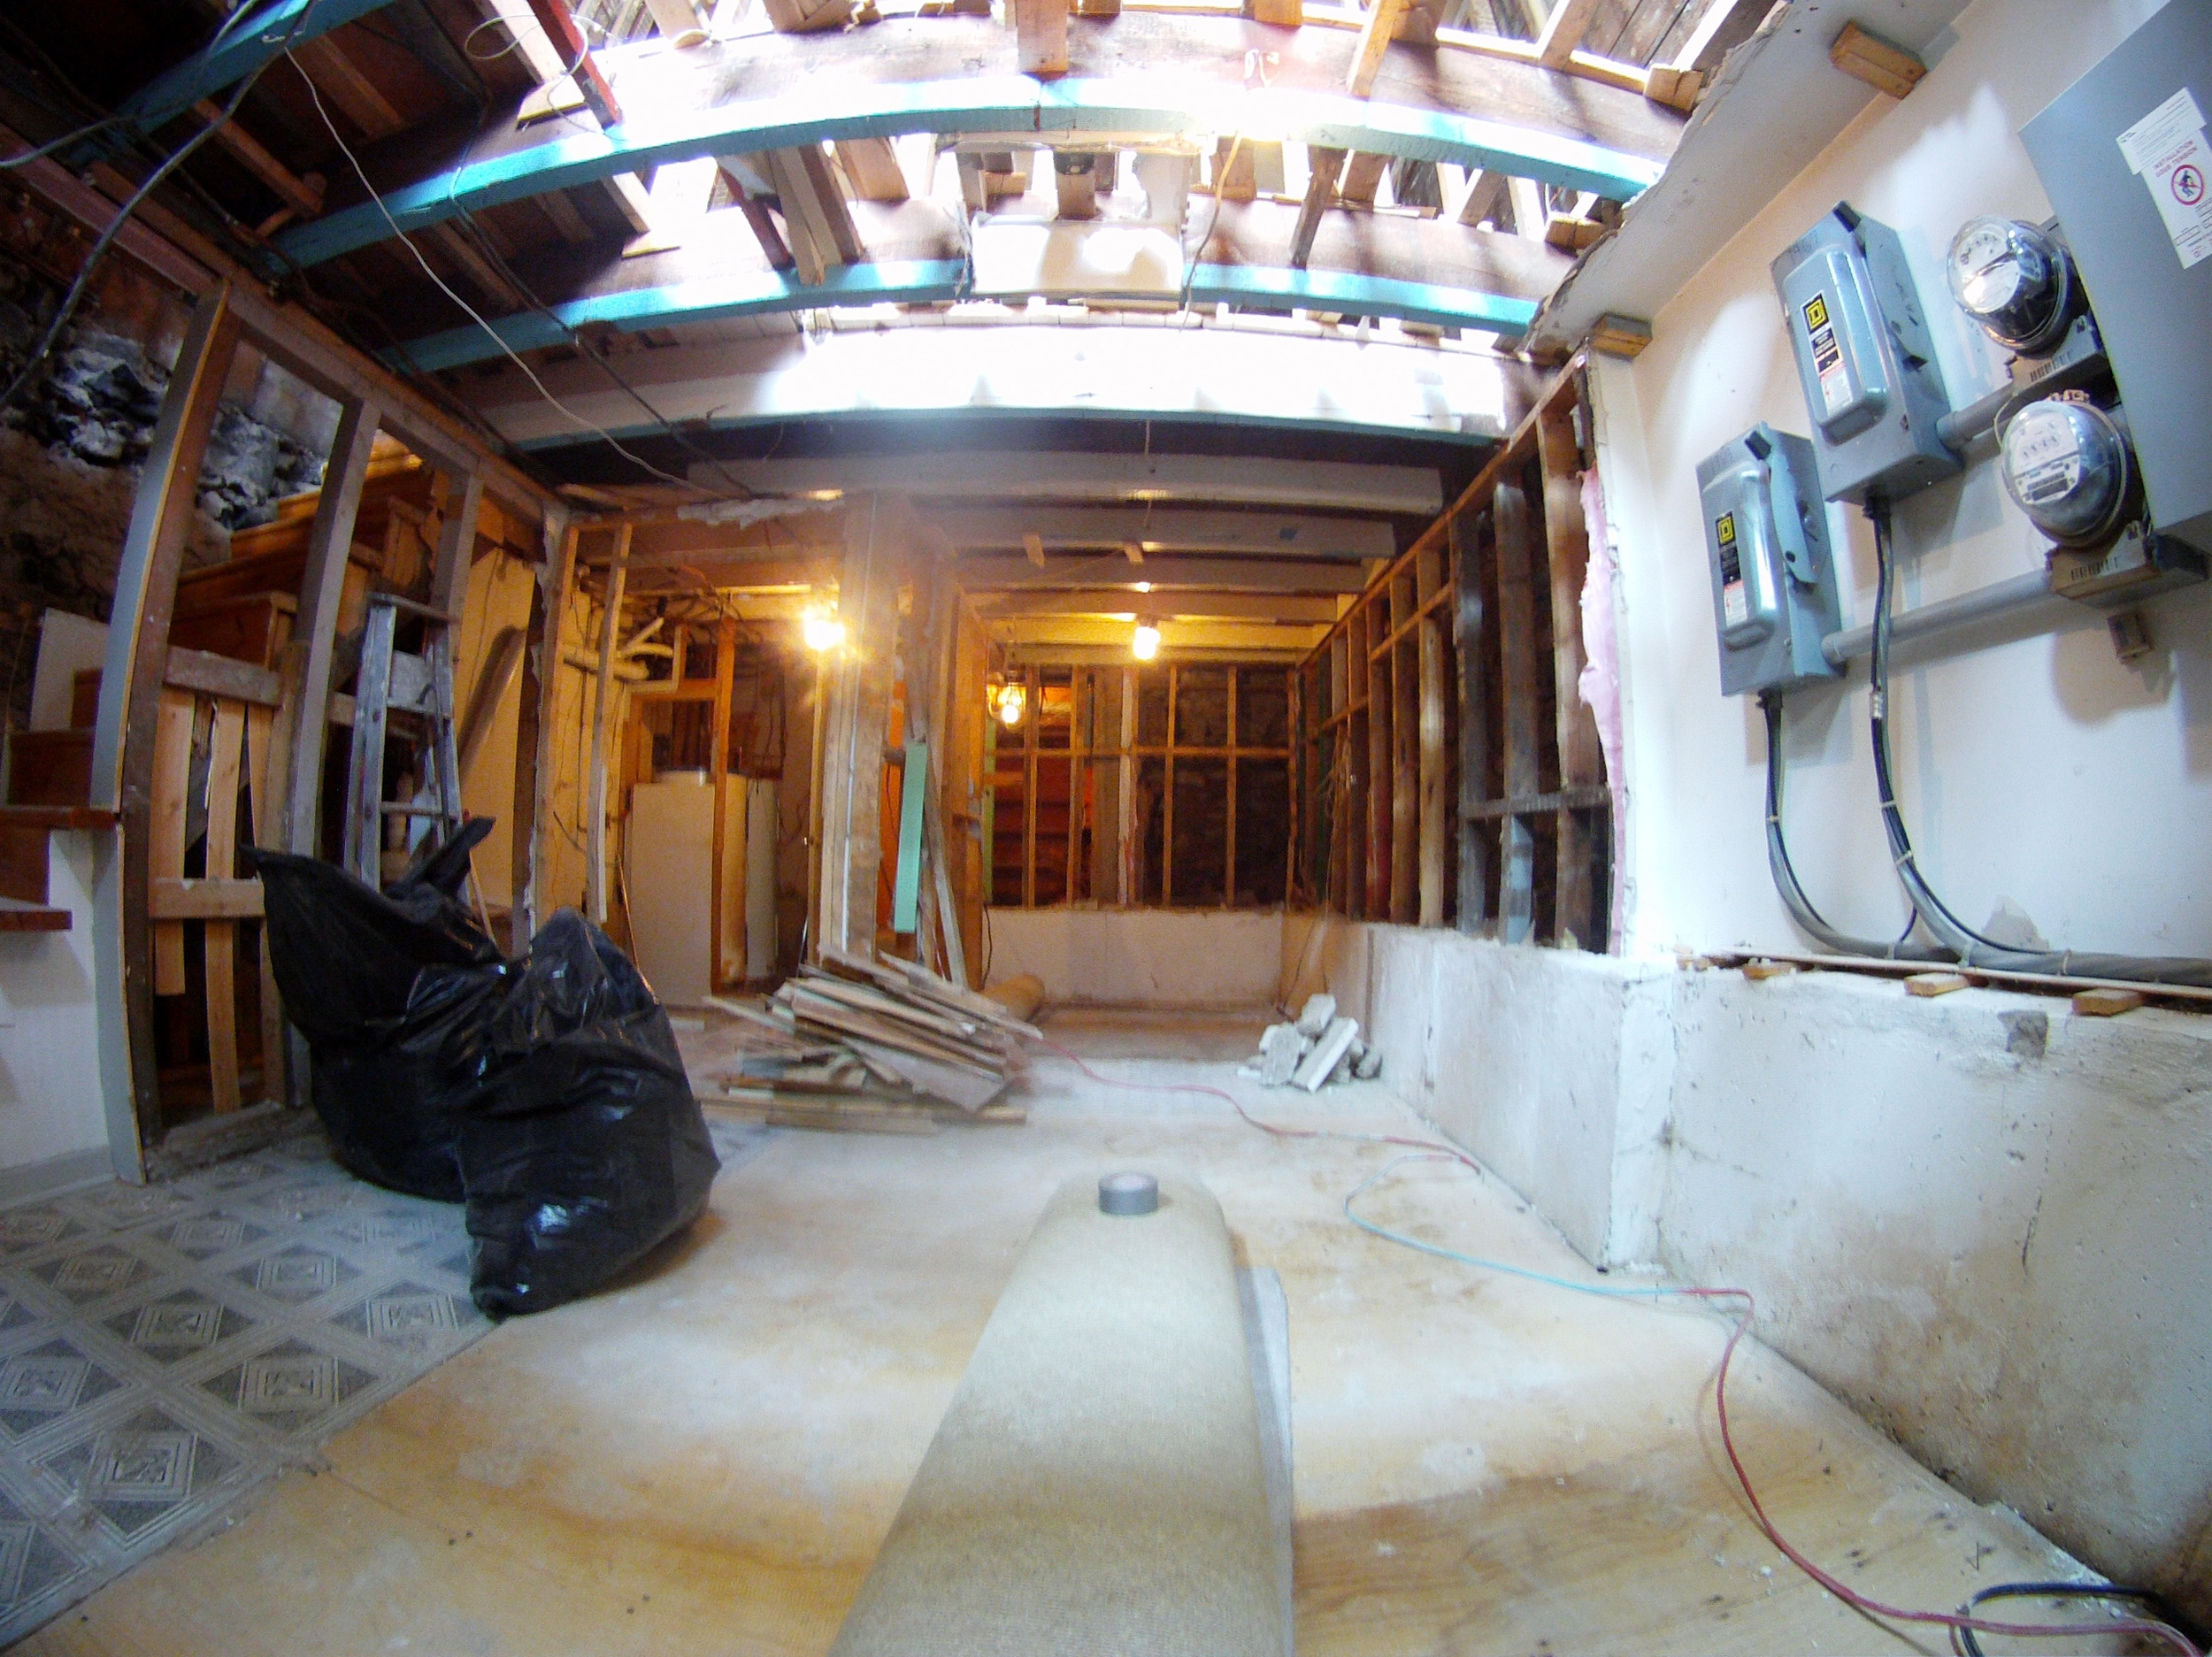 Basement......we will rip up the floors next week.